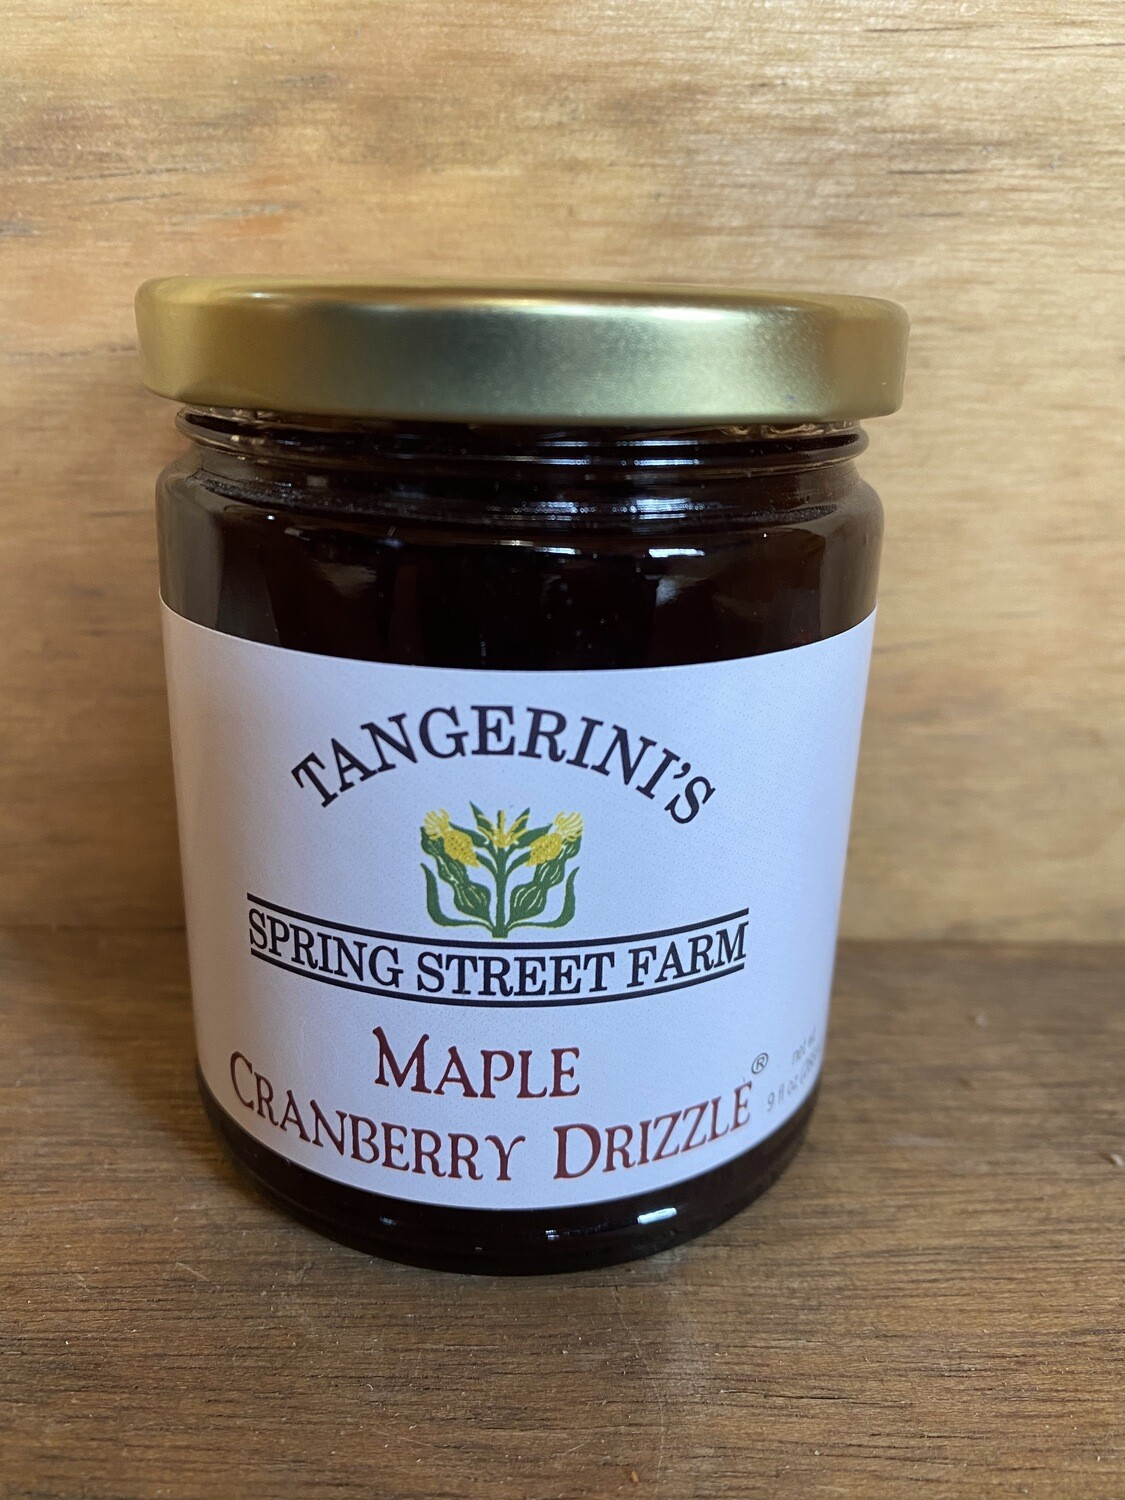 Tangerini's Maple Cranberry Drizzle